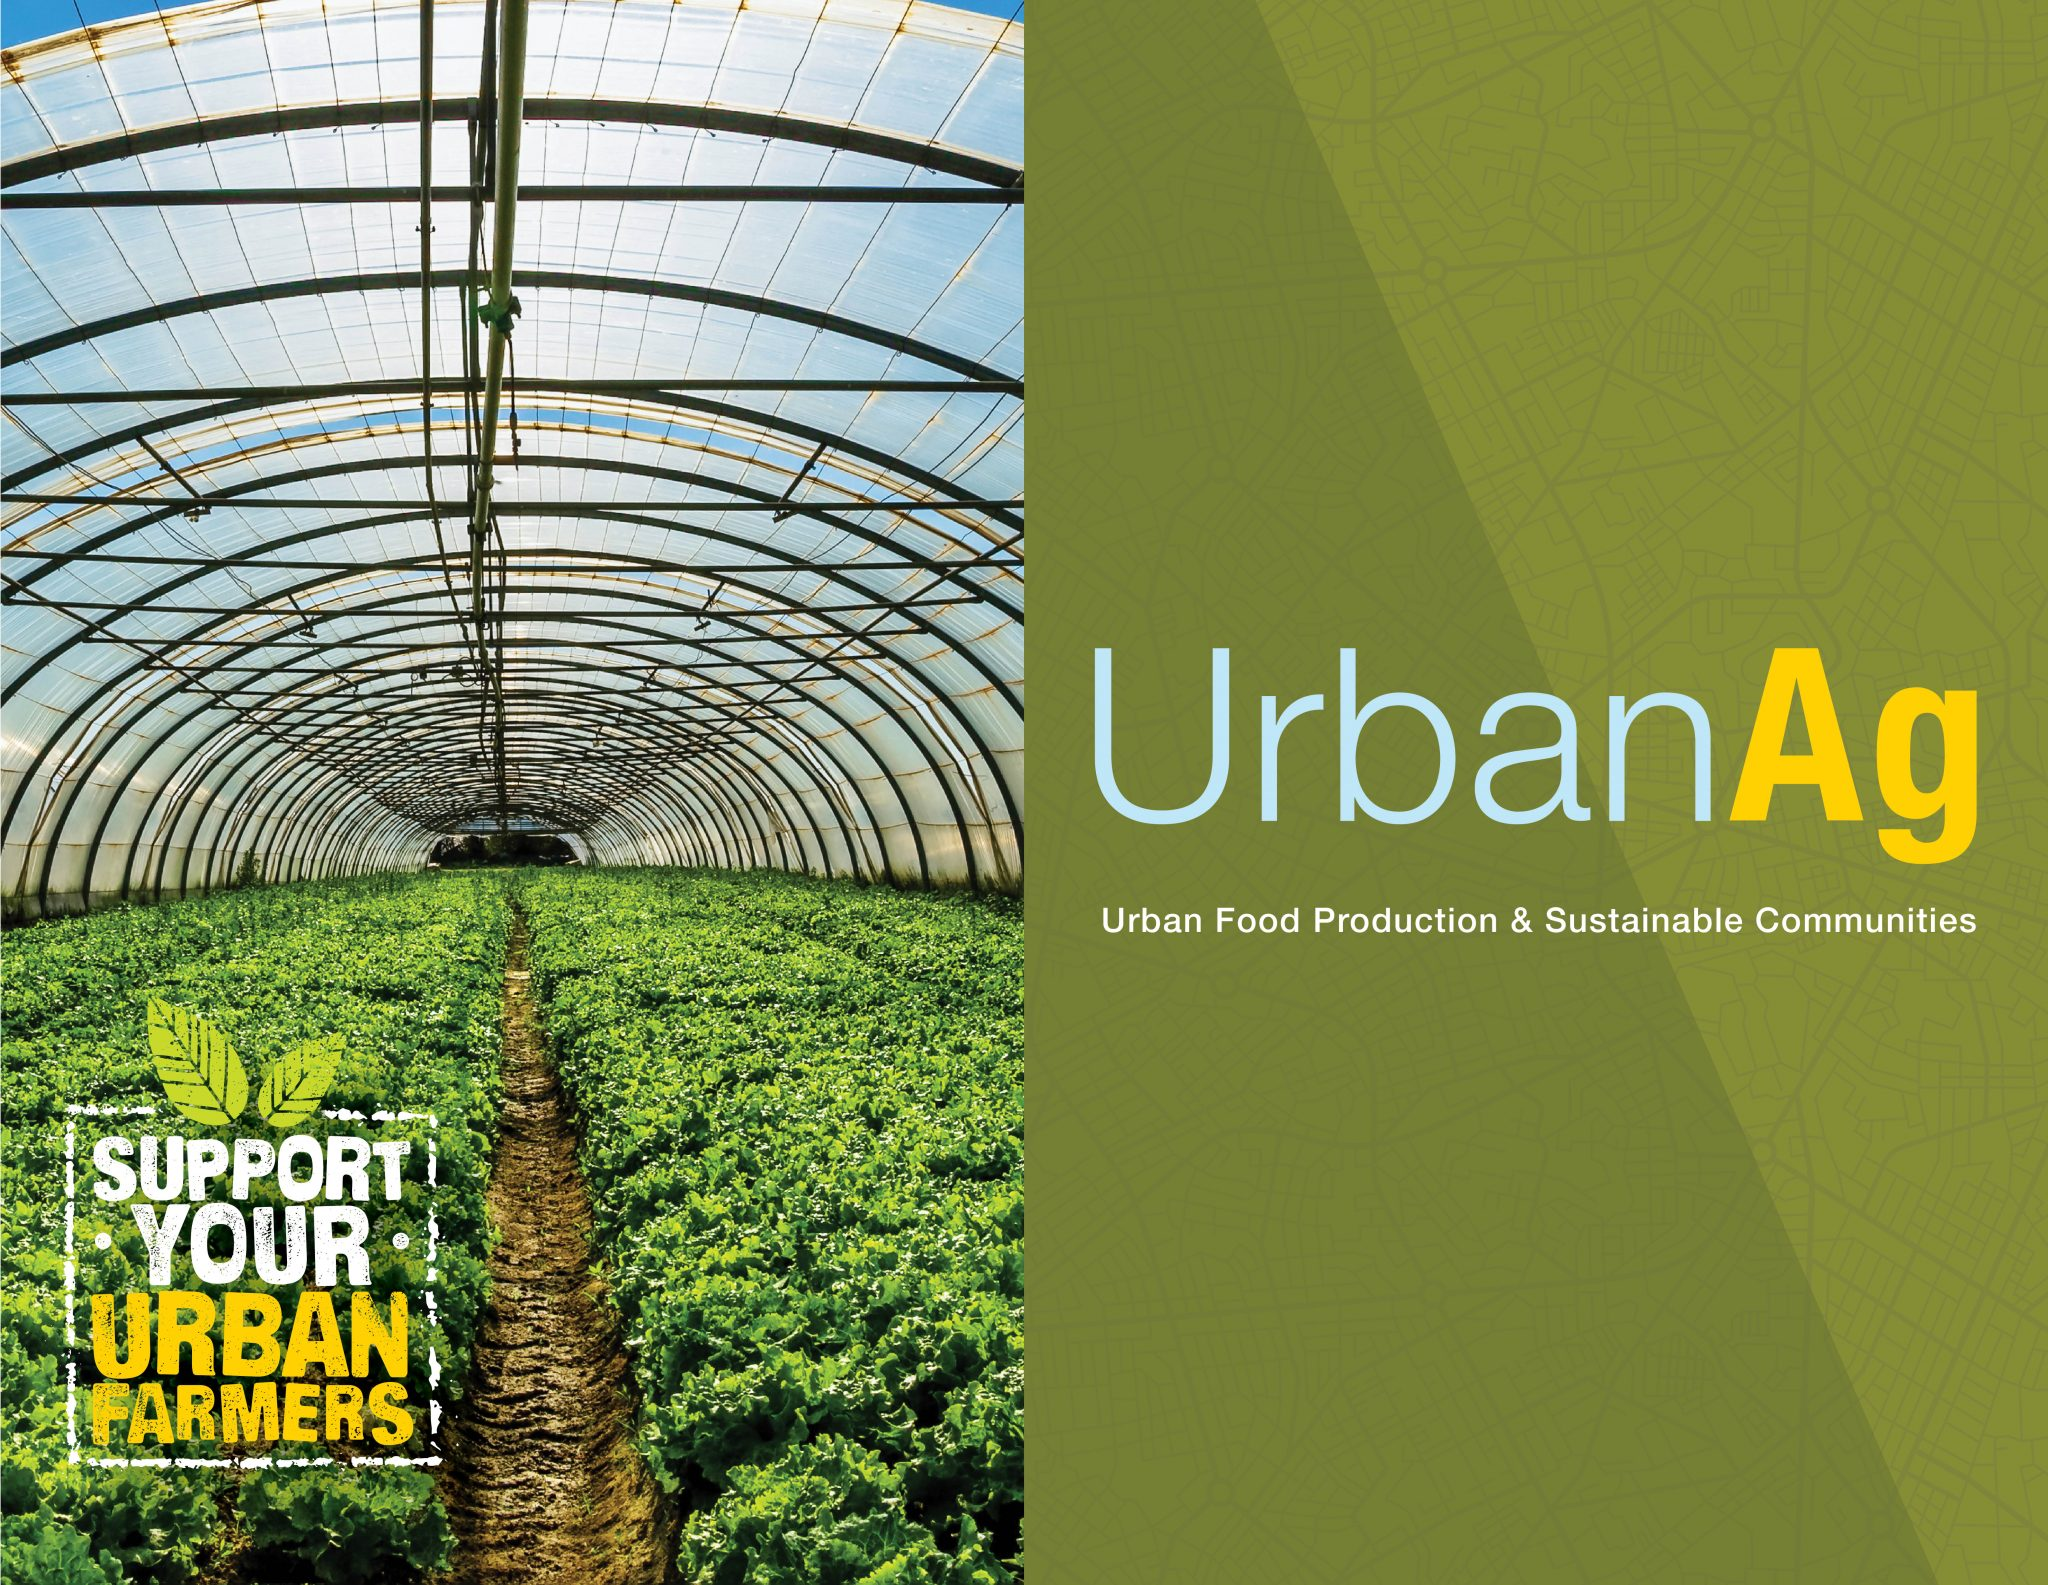 Hoop House with crops growing inside: Support your urban farmers. Urban Ag